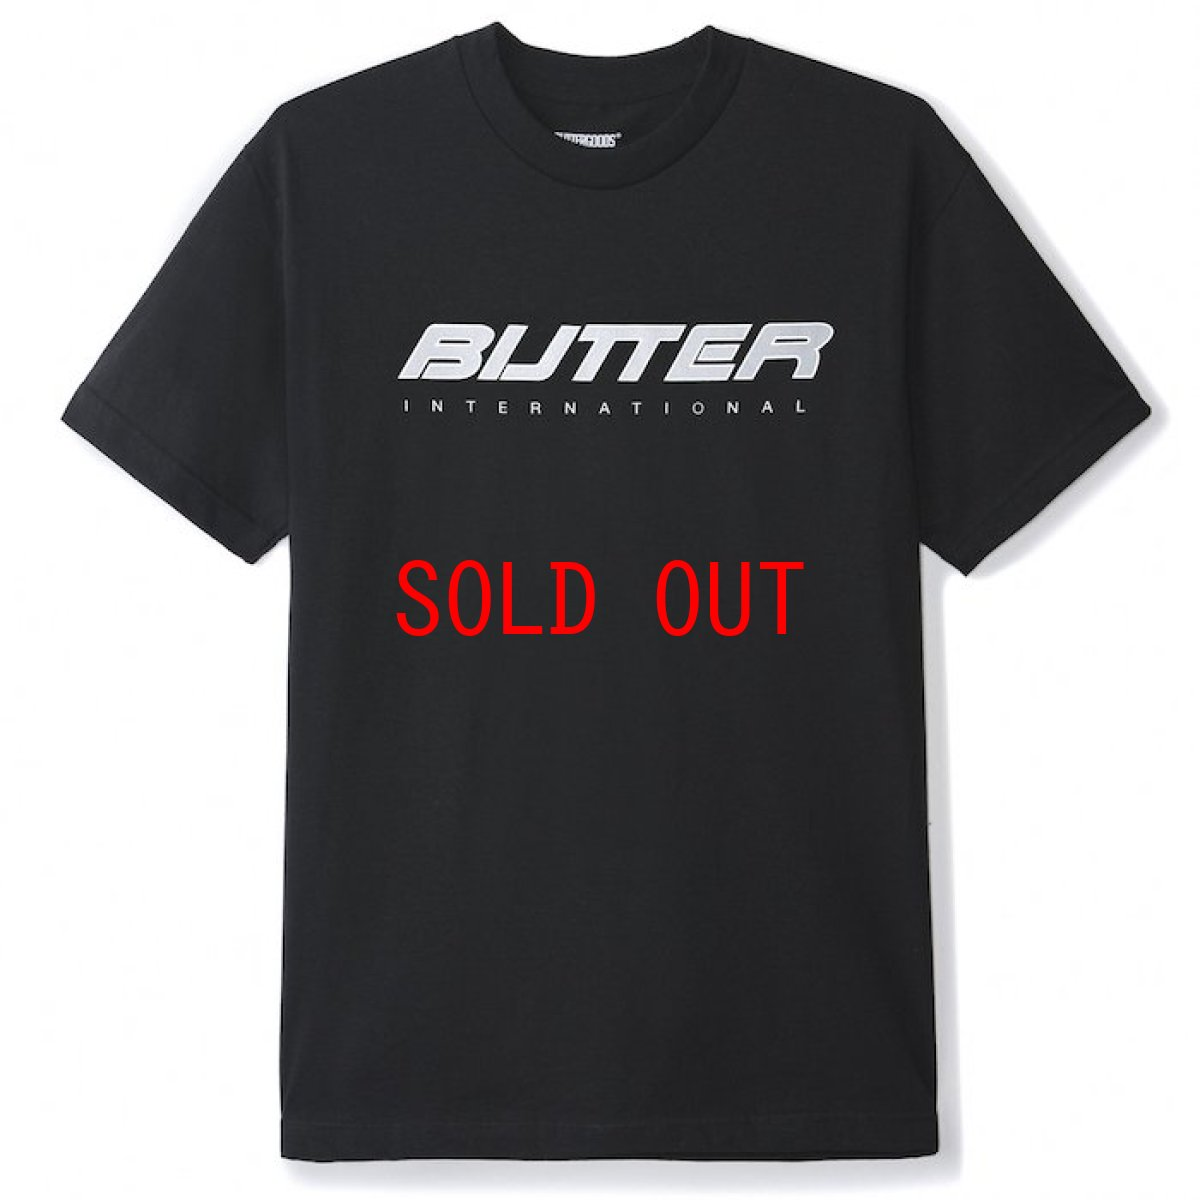 画像1: Butter Goods(バターグッズ) International Logo S/S Tee 半袖 Tシャツ (1)